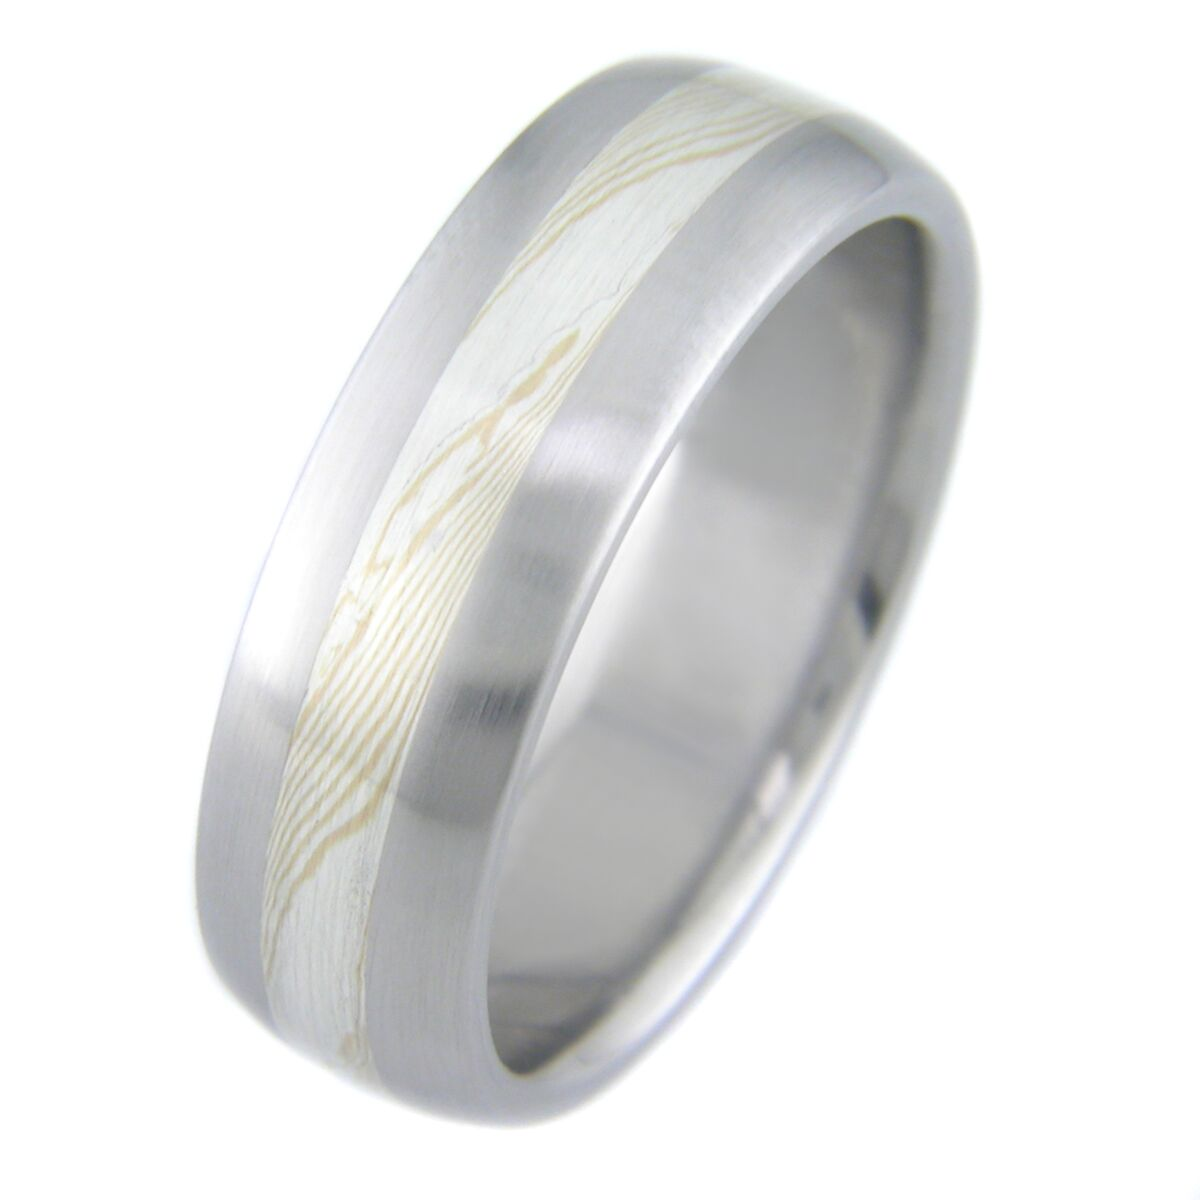 band sterling and palladium gane woodgrain rings wedding metal white unique ring mokume narrow silver gold large products